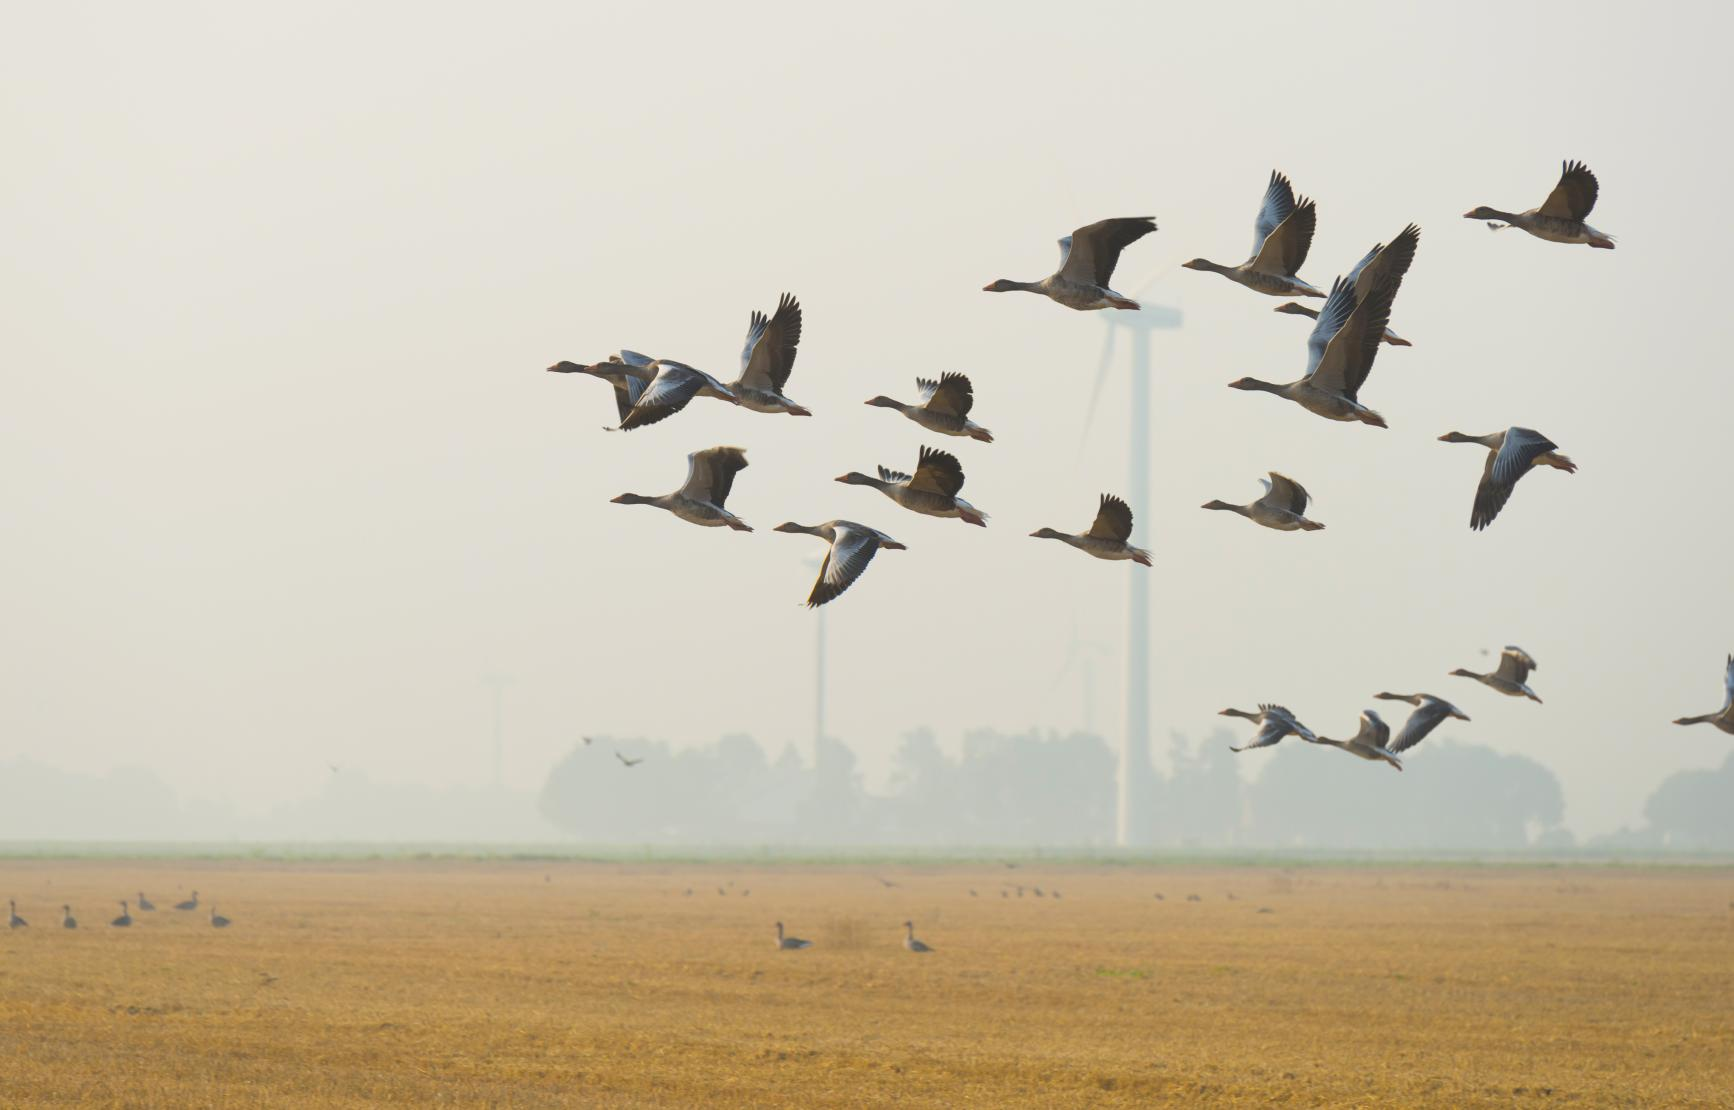 A flock of birds flying in the foreground with windmills in the background